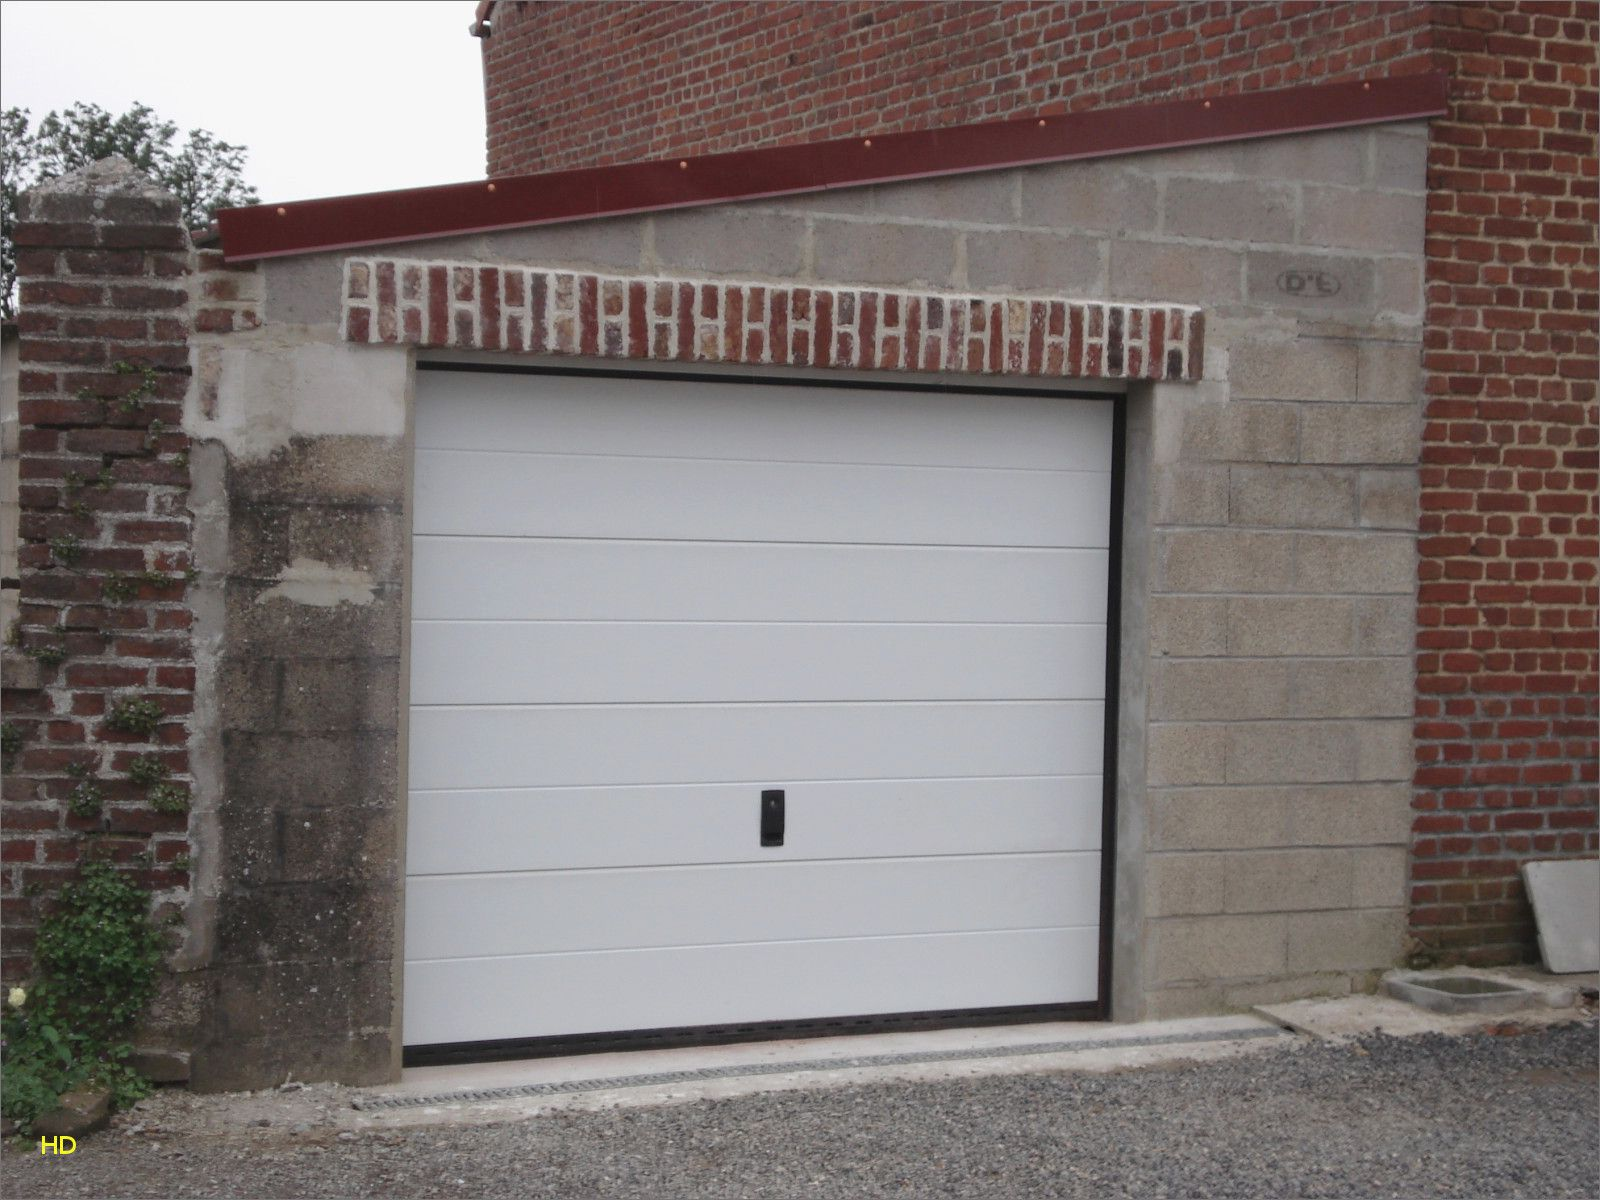 Fresh Isolant Porte De Garage Brico Depot Outdoor Decor Interior Design Bedroom Garage